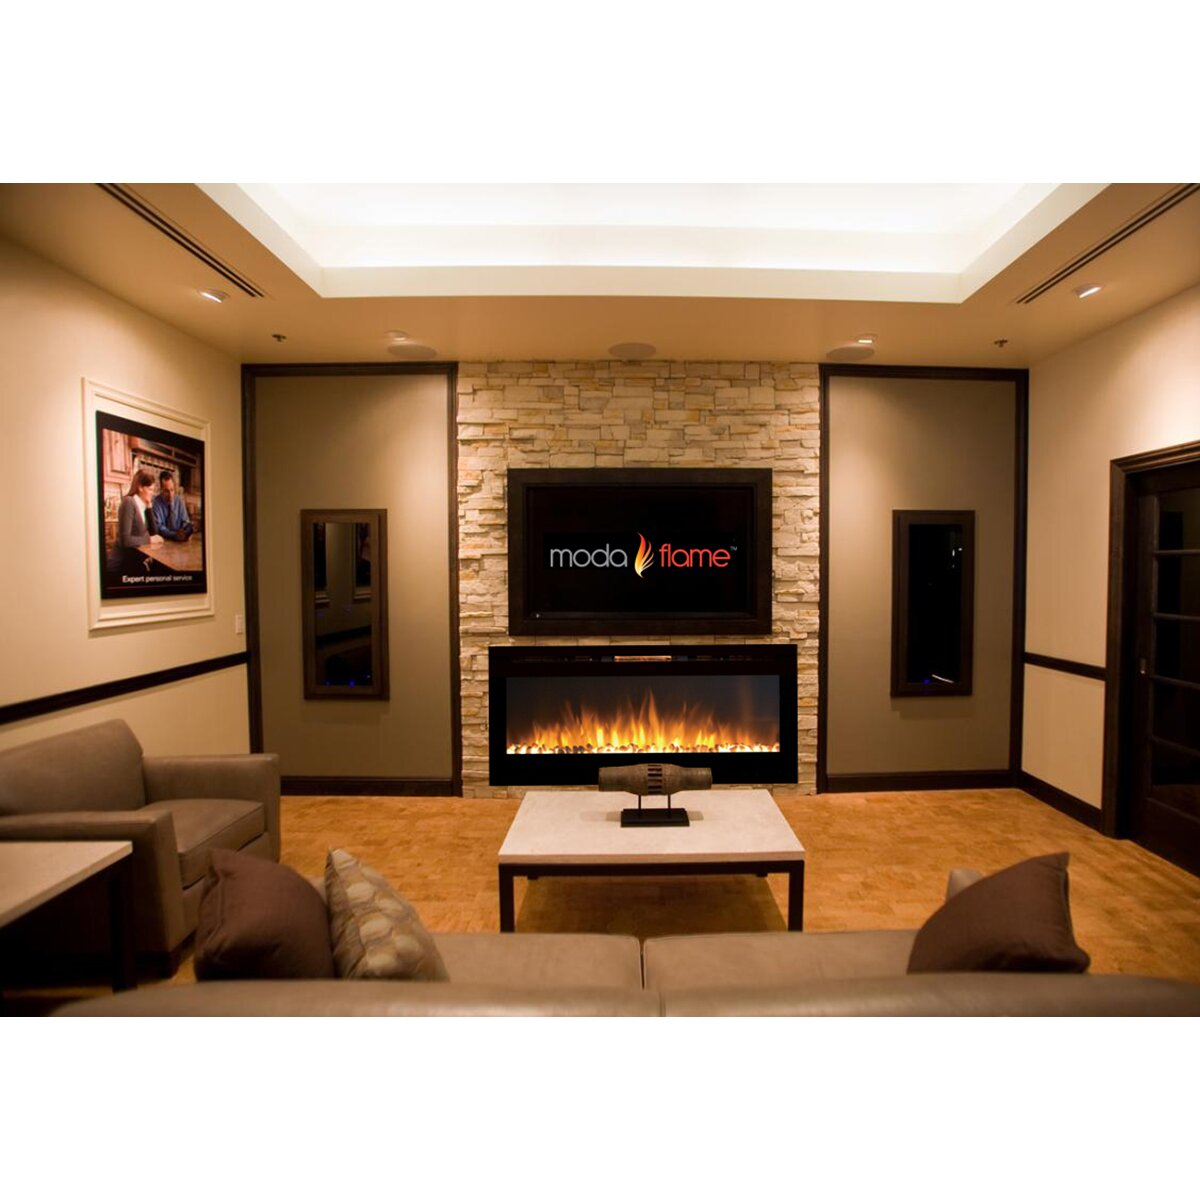 moda flame pro cynergy pebble stone built in wall mount. Black Bedroom Furniture Sets. Home Design Ideas